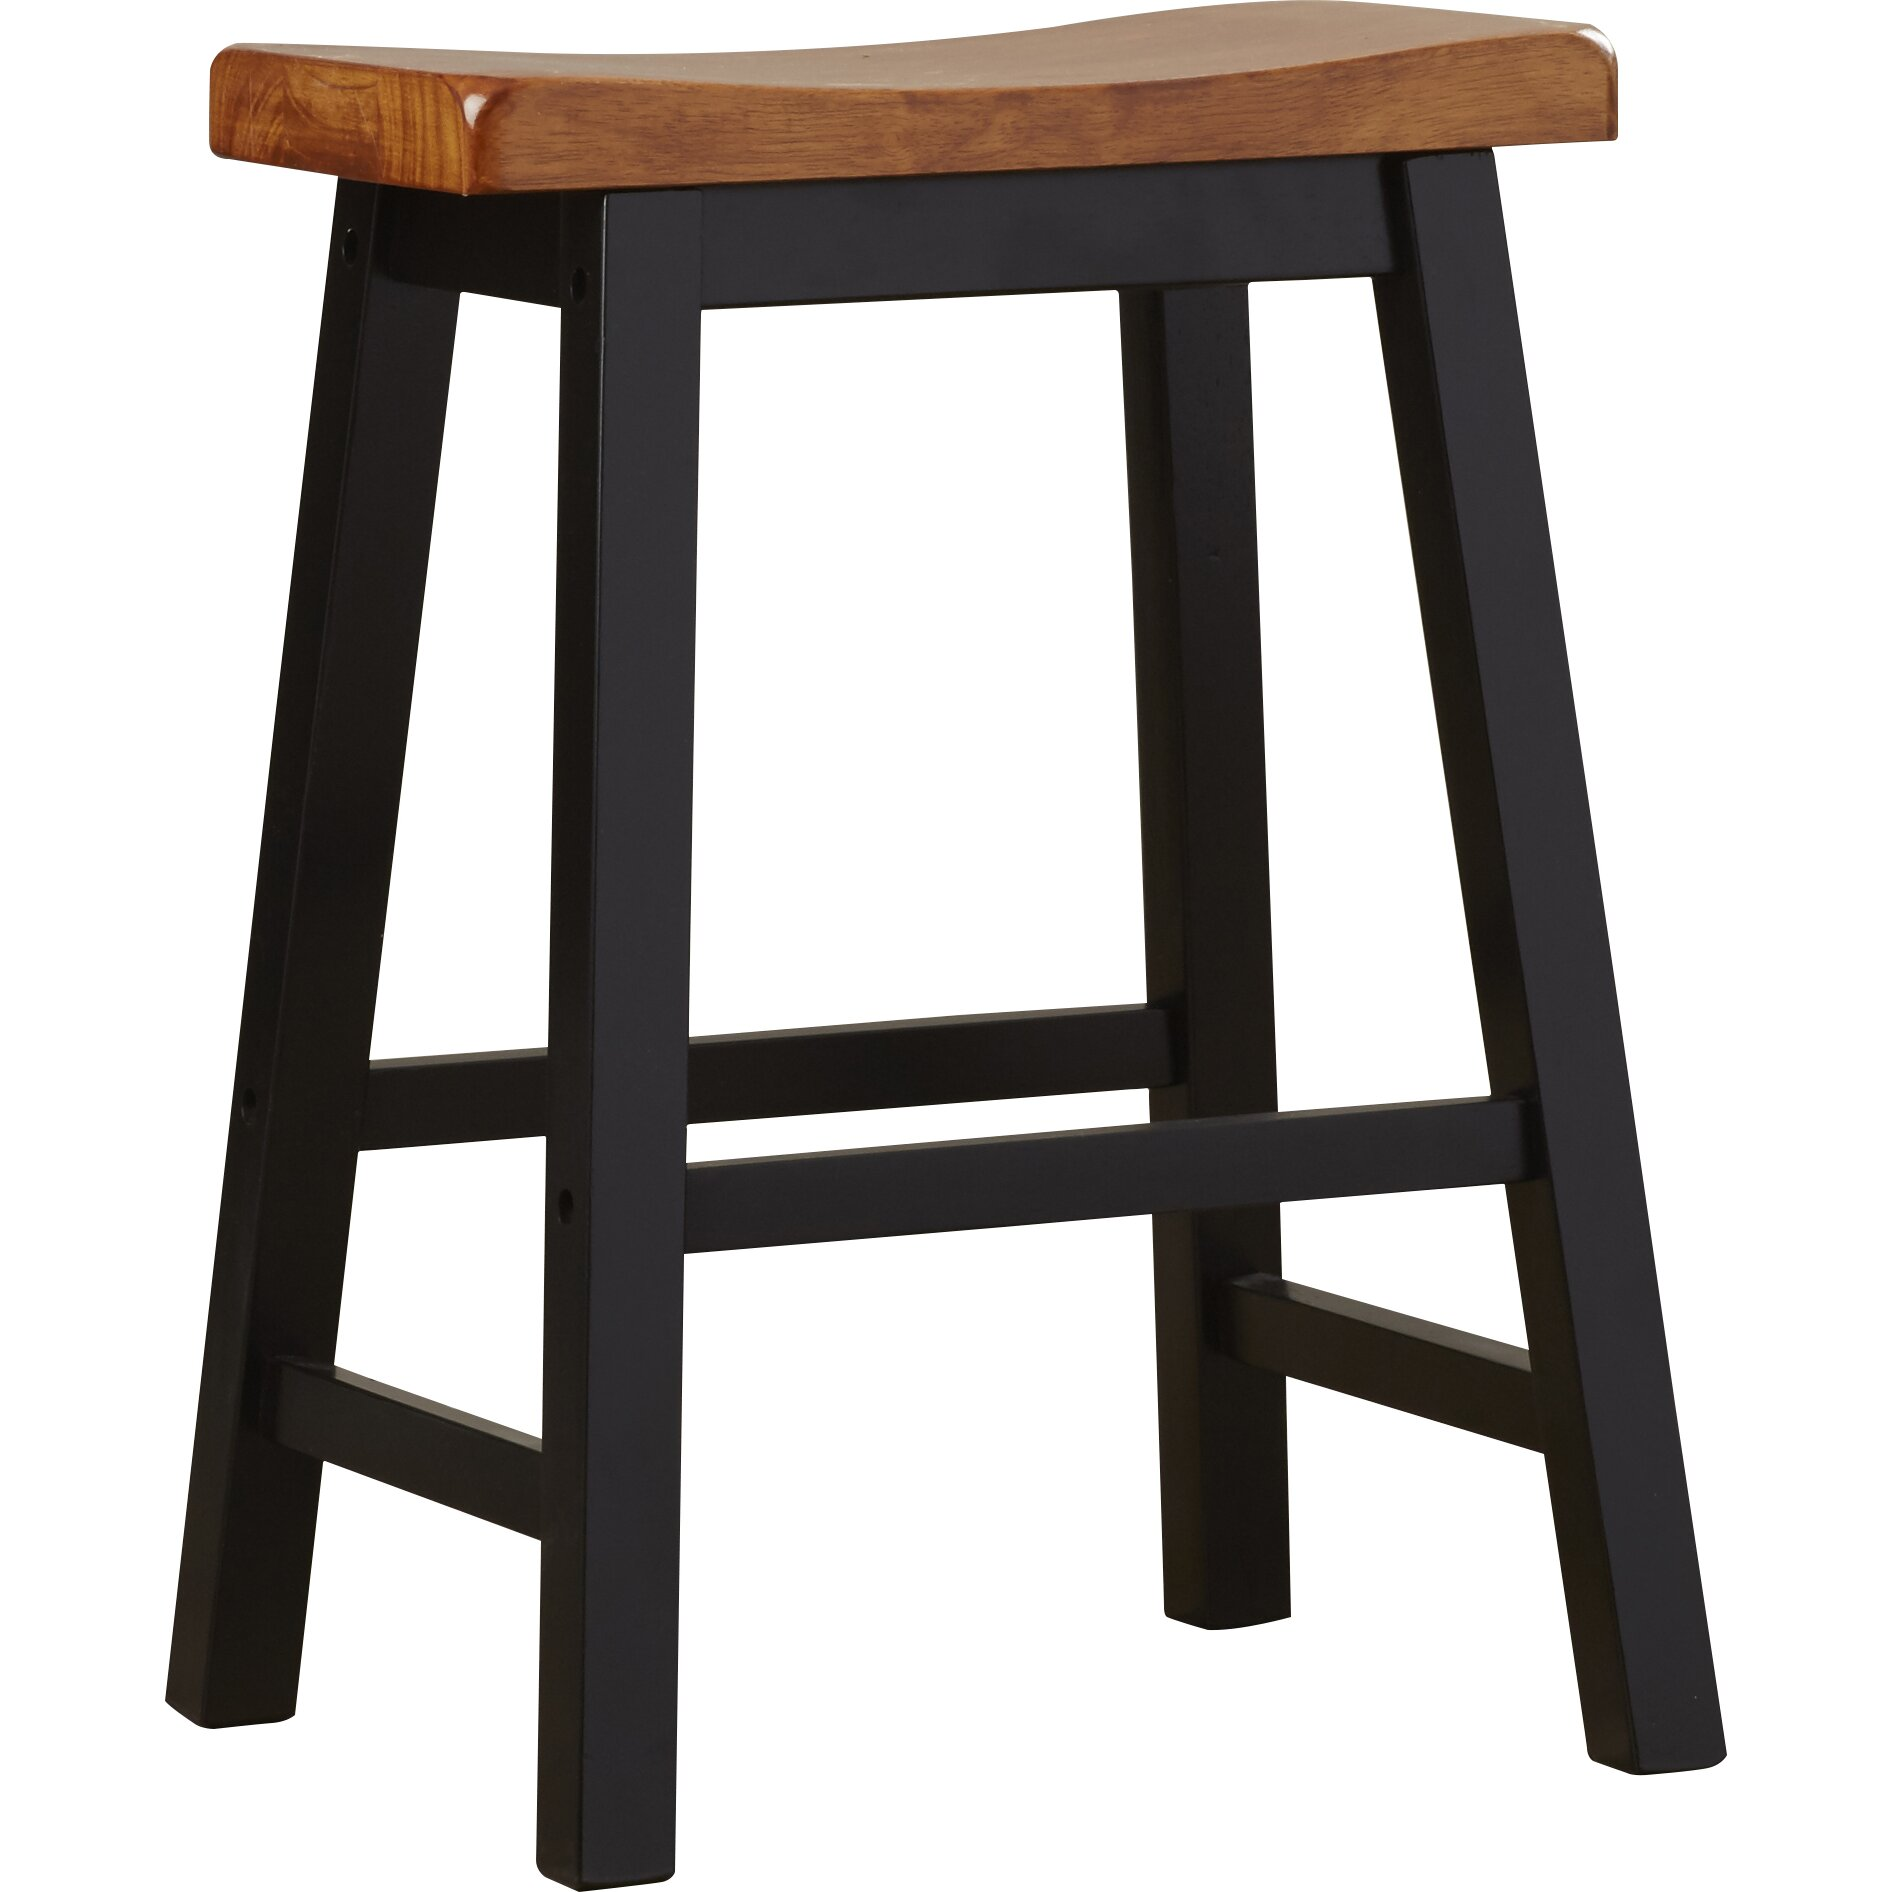 Loon Peak 24quot Bar Stool amp Reviews Wayfair : Scott 24 Bar Stool LOON3937 from www.wayfair.com size 1892 x 1892 jpeg 222kB